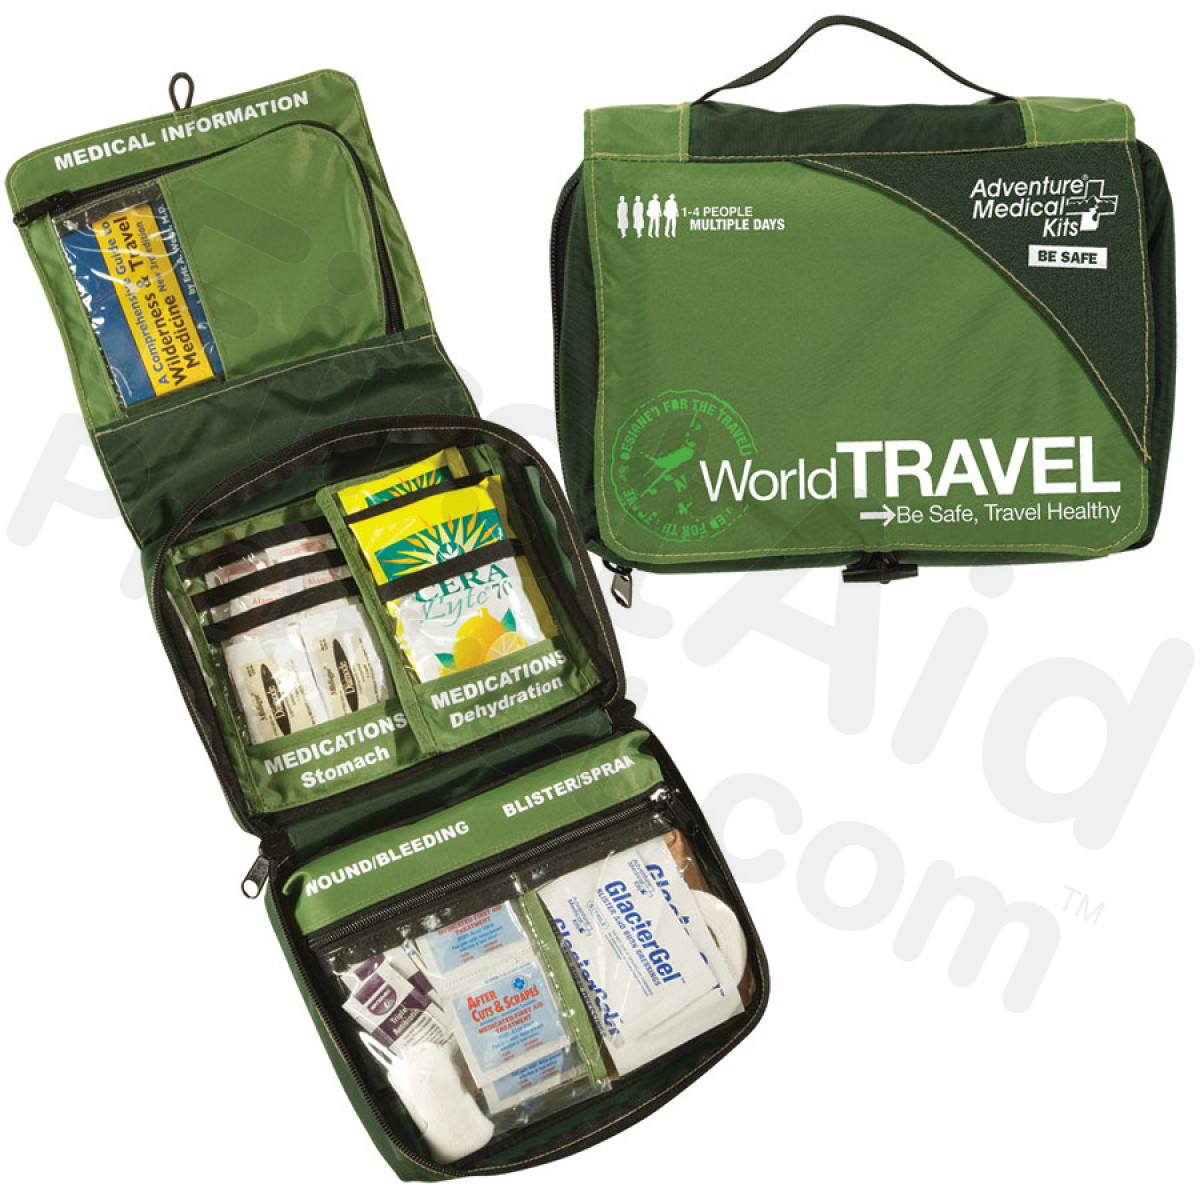 Medical Assistance The World Travel Provides You With A Full Complement Of Wound Care Supplies As Well